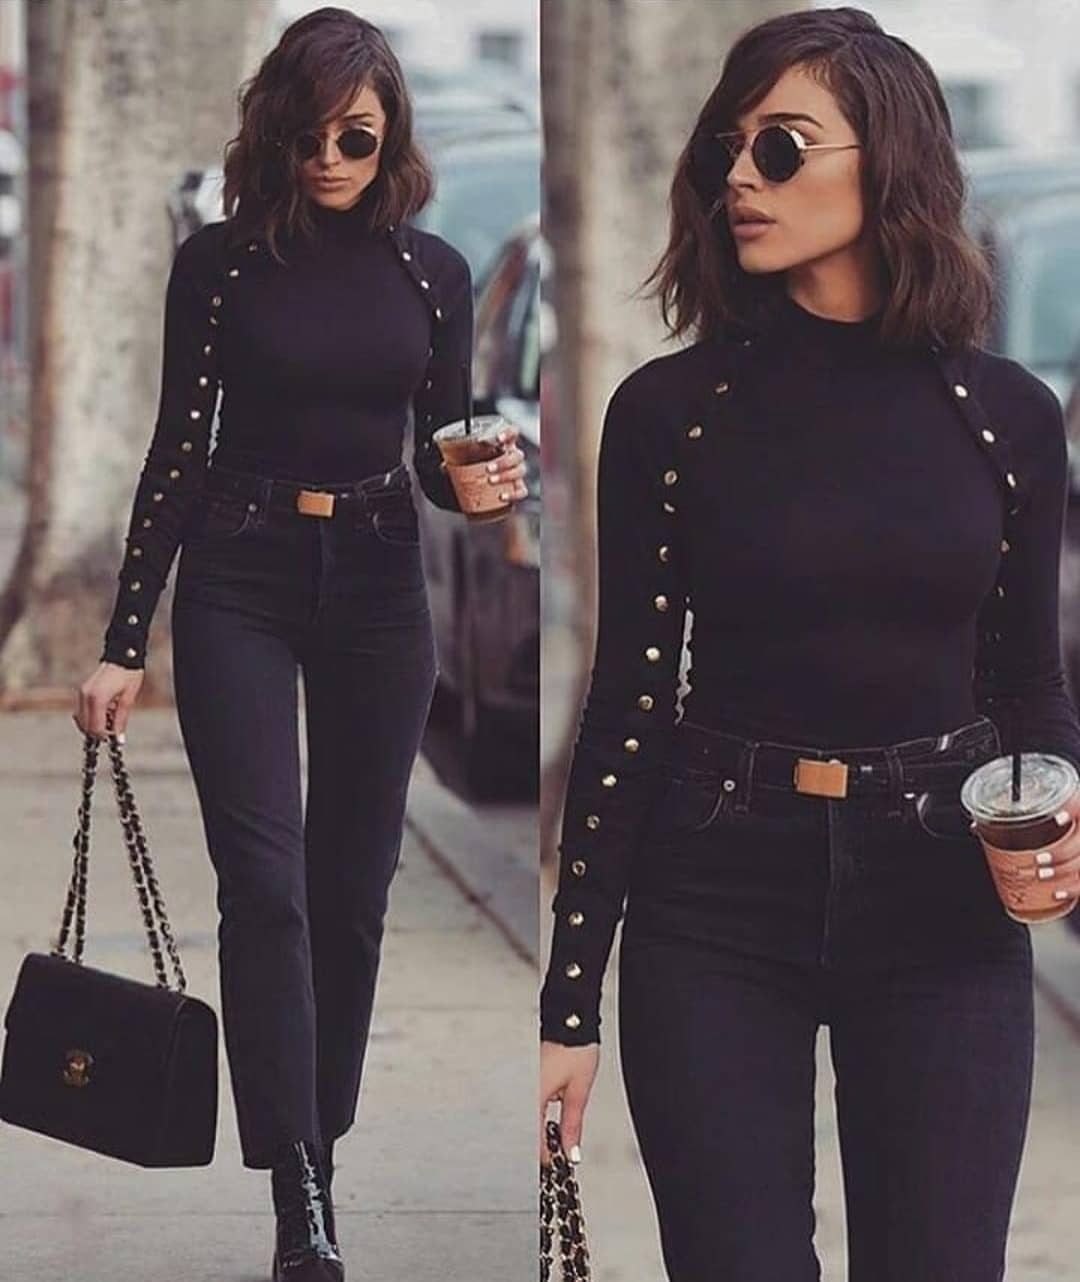 All Black 1970 Style Look: Sweater With Gold Buttons, Jeans And Patent Boots 2019